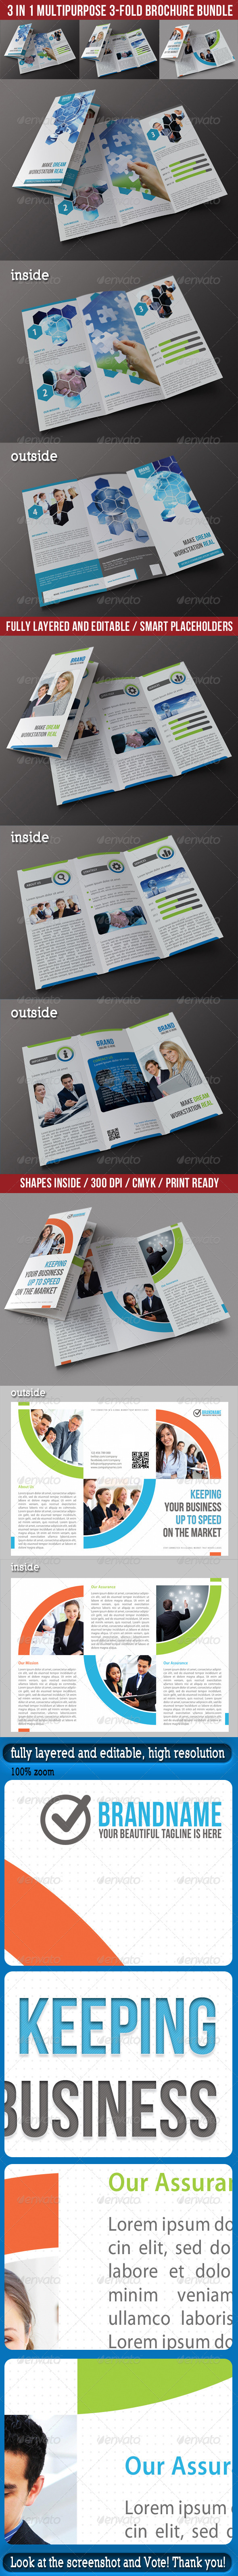 GraphicRiver 3 in 1 Corporate 3-Fold Brochure Bundle 01 7028468